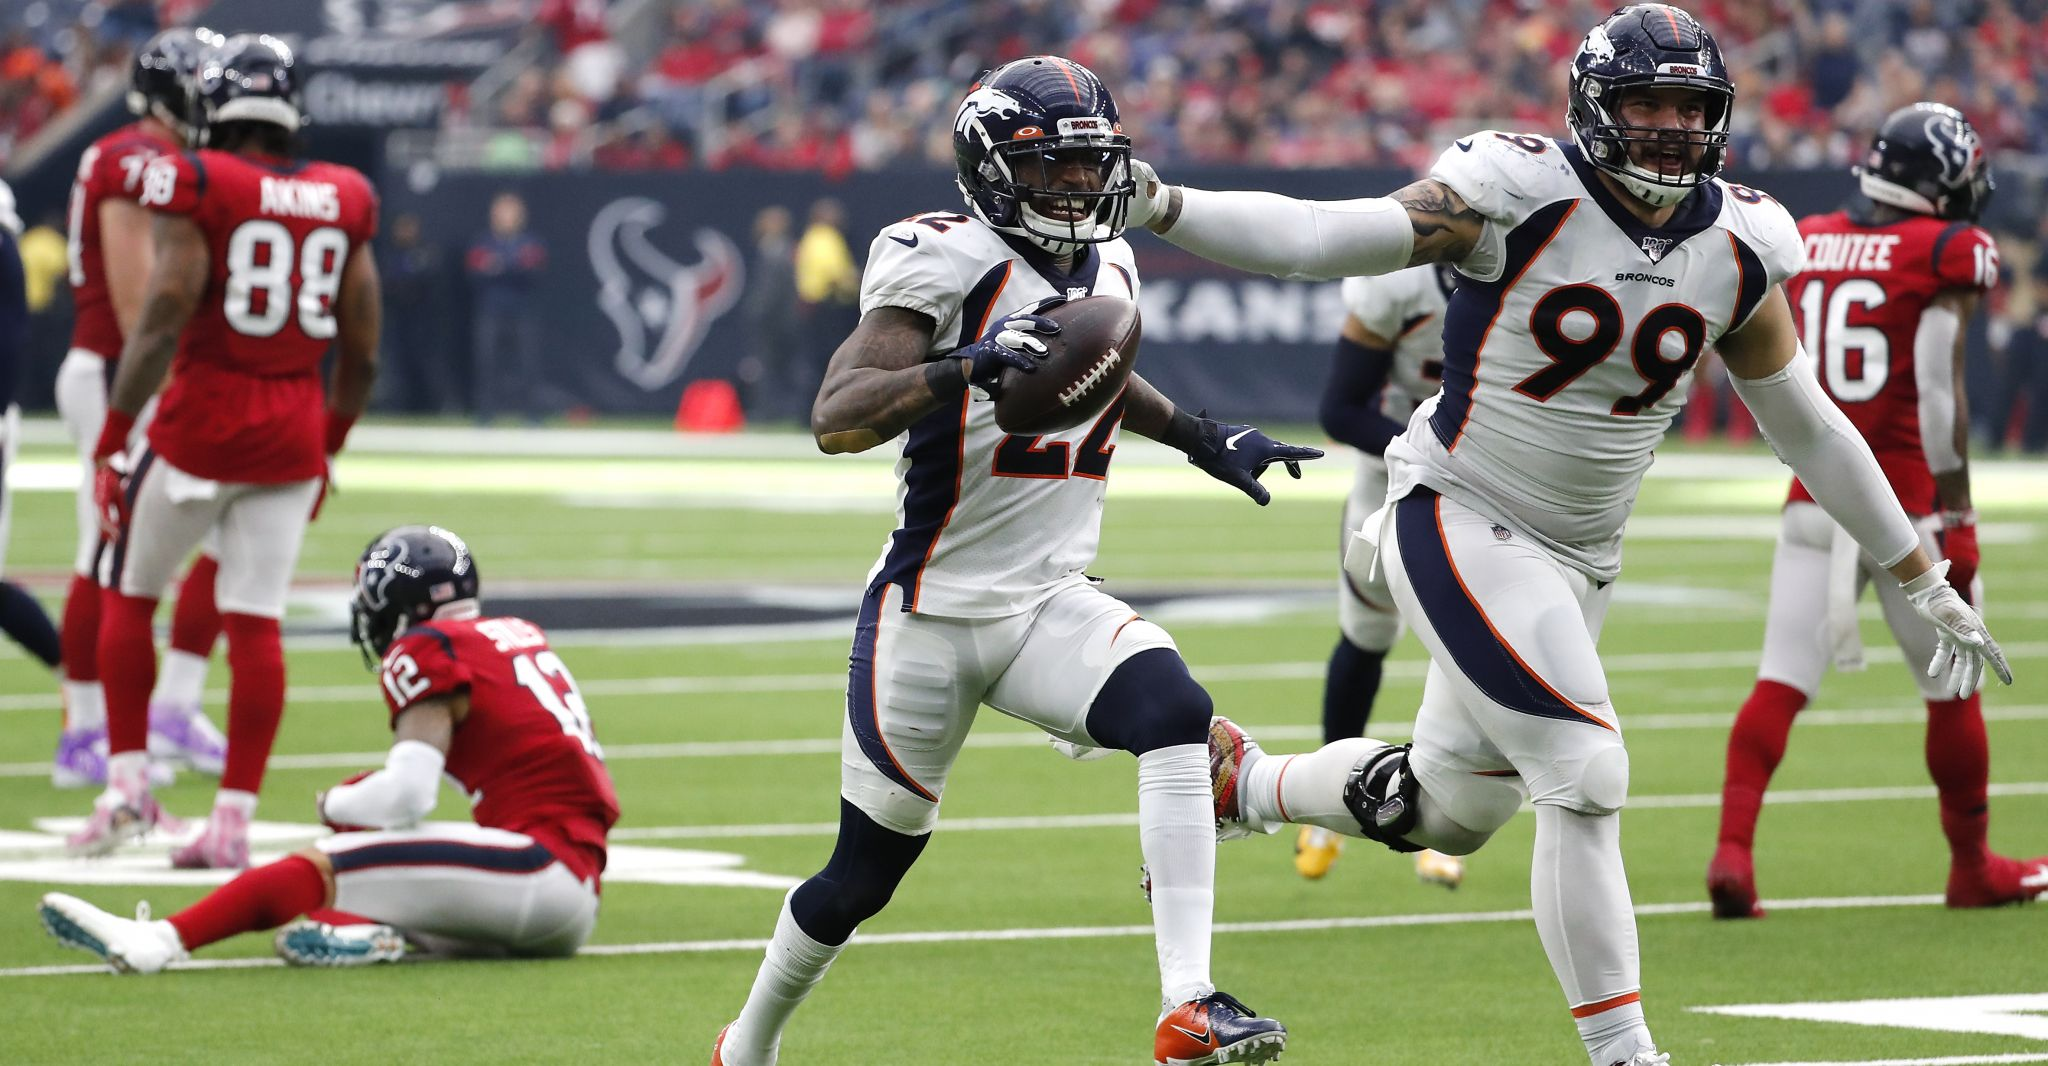 Texans' Bill O'Brien on Kareem Jackson's TD: 'That was a weird play'